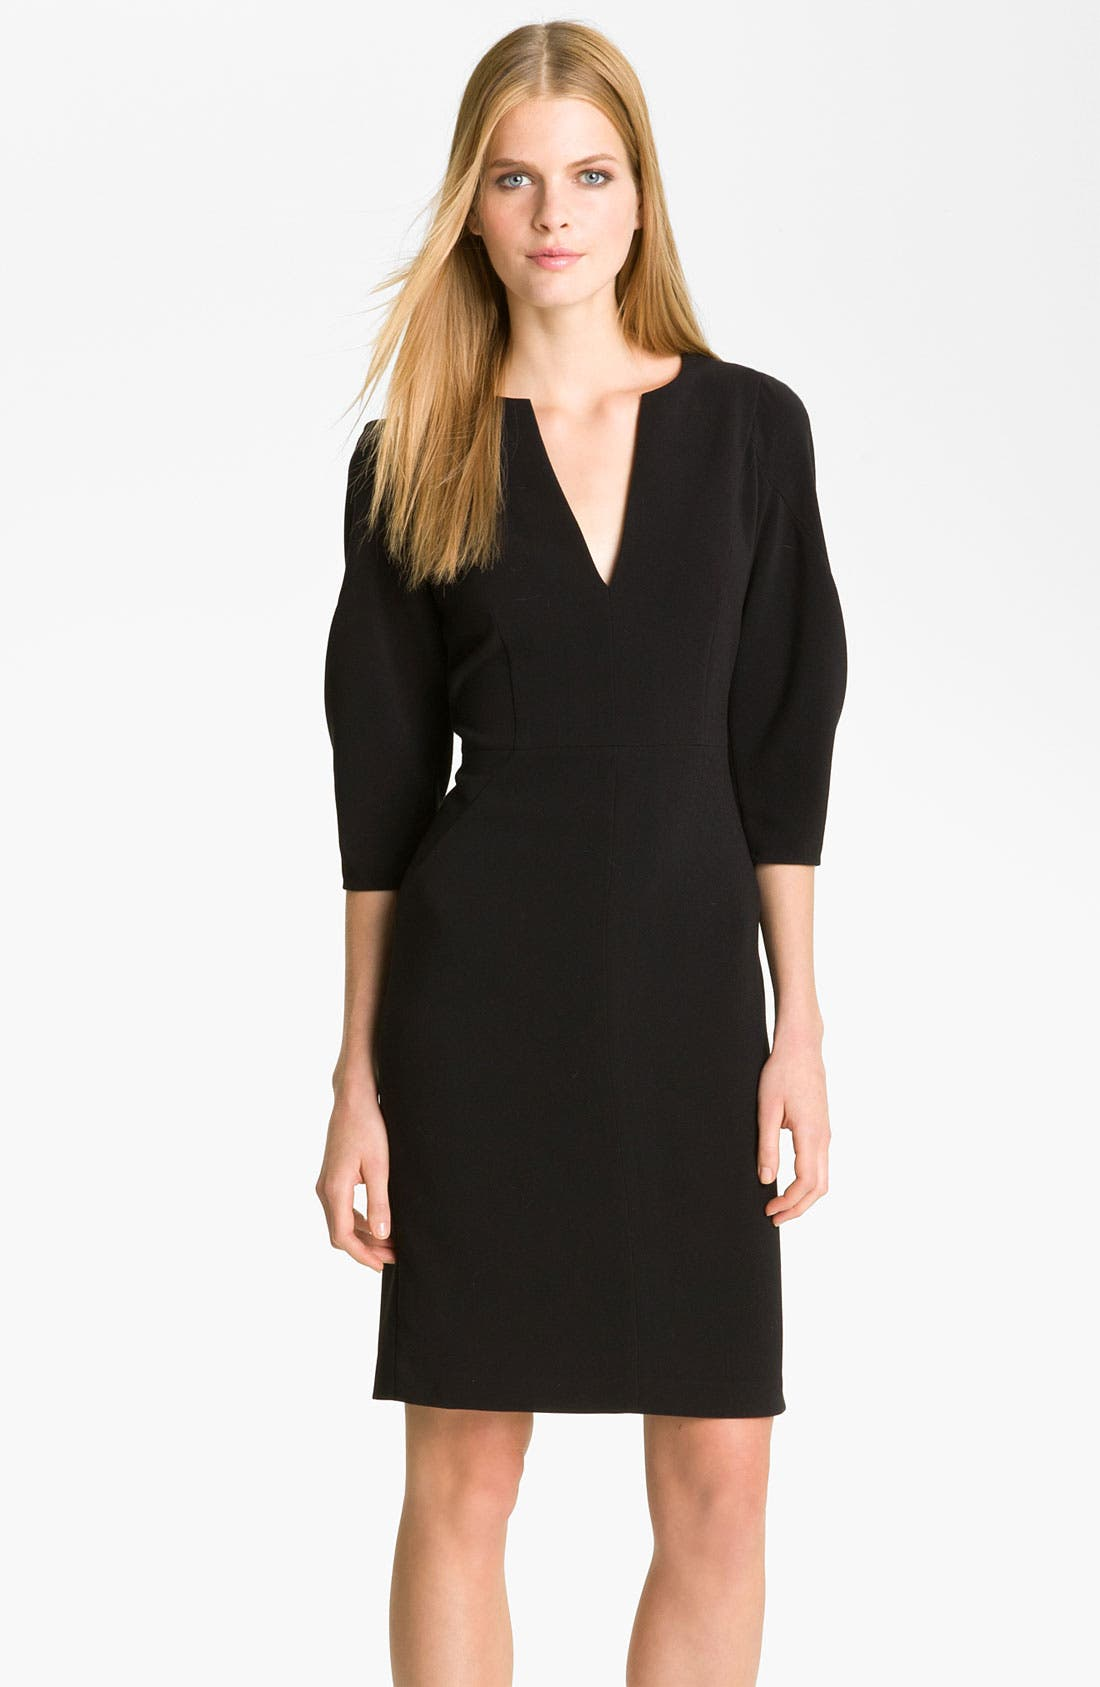 Alternate Image 1 Selected - Rachel Roy Sheath Dress & Accessories